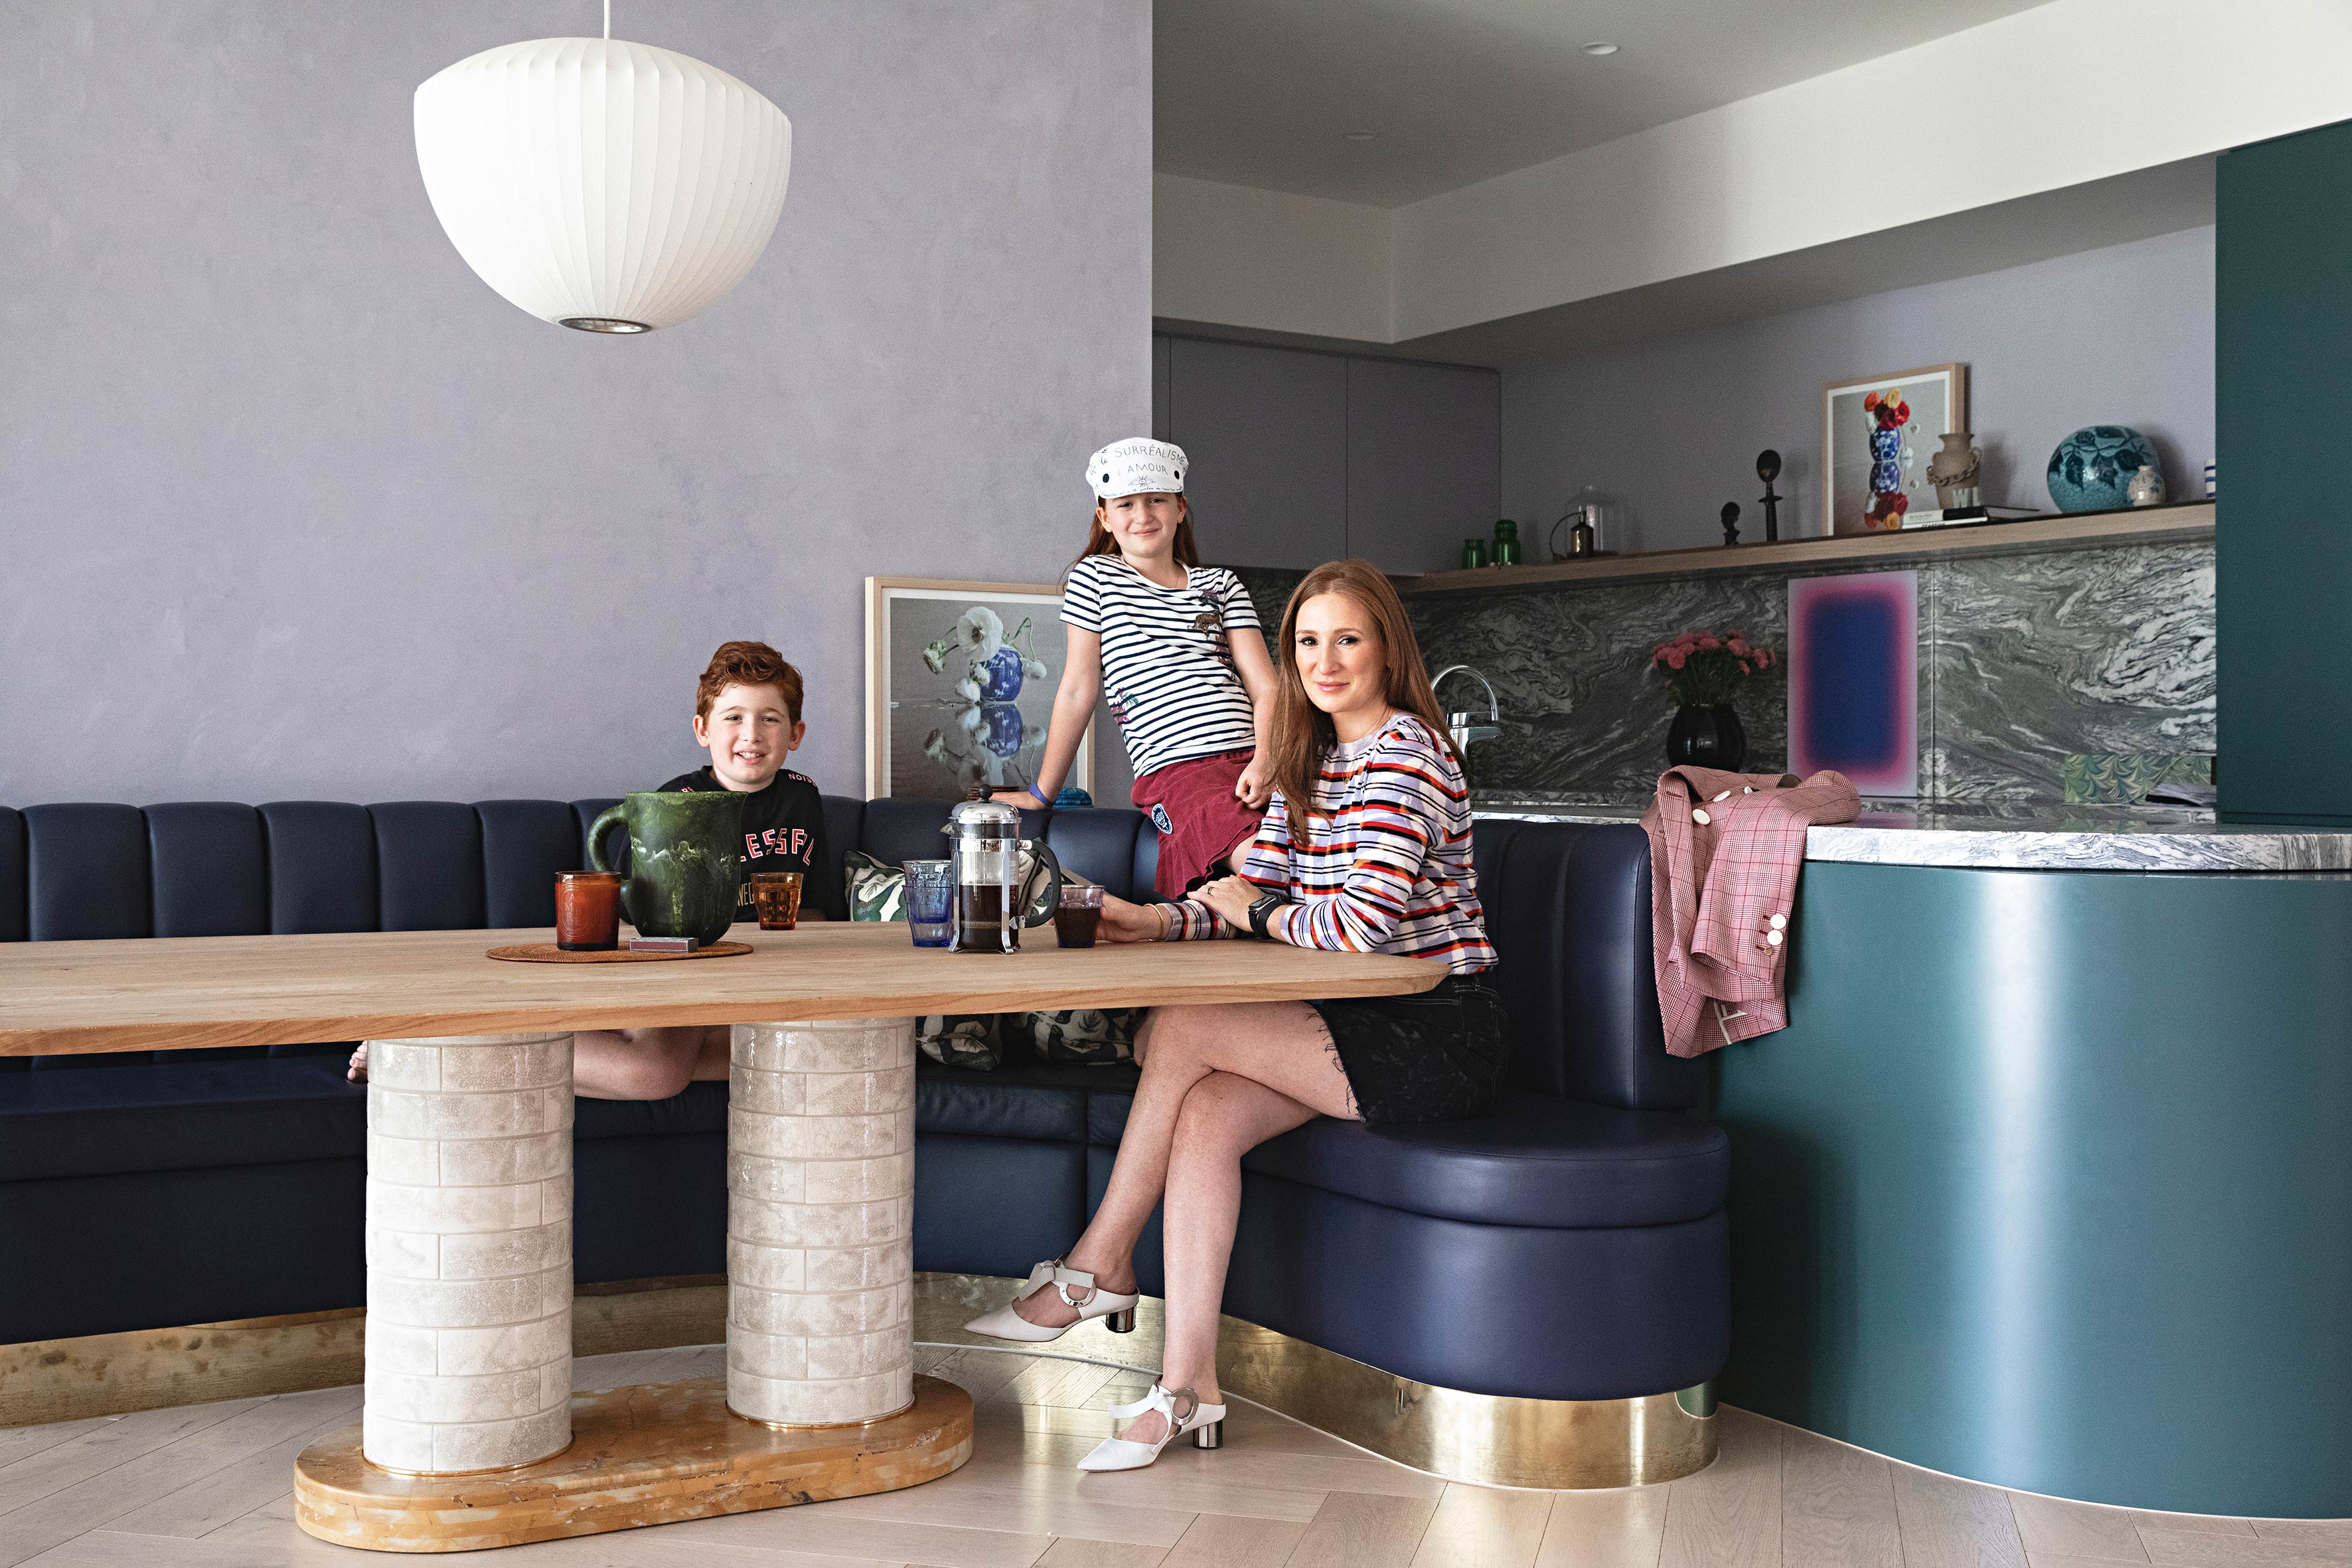 Ilana Moses Shows us Around Her Spectacular Melbourne Abode